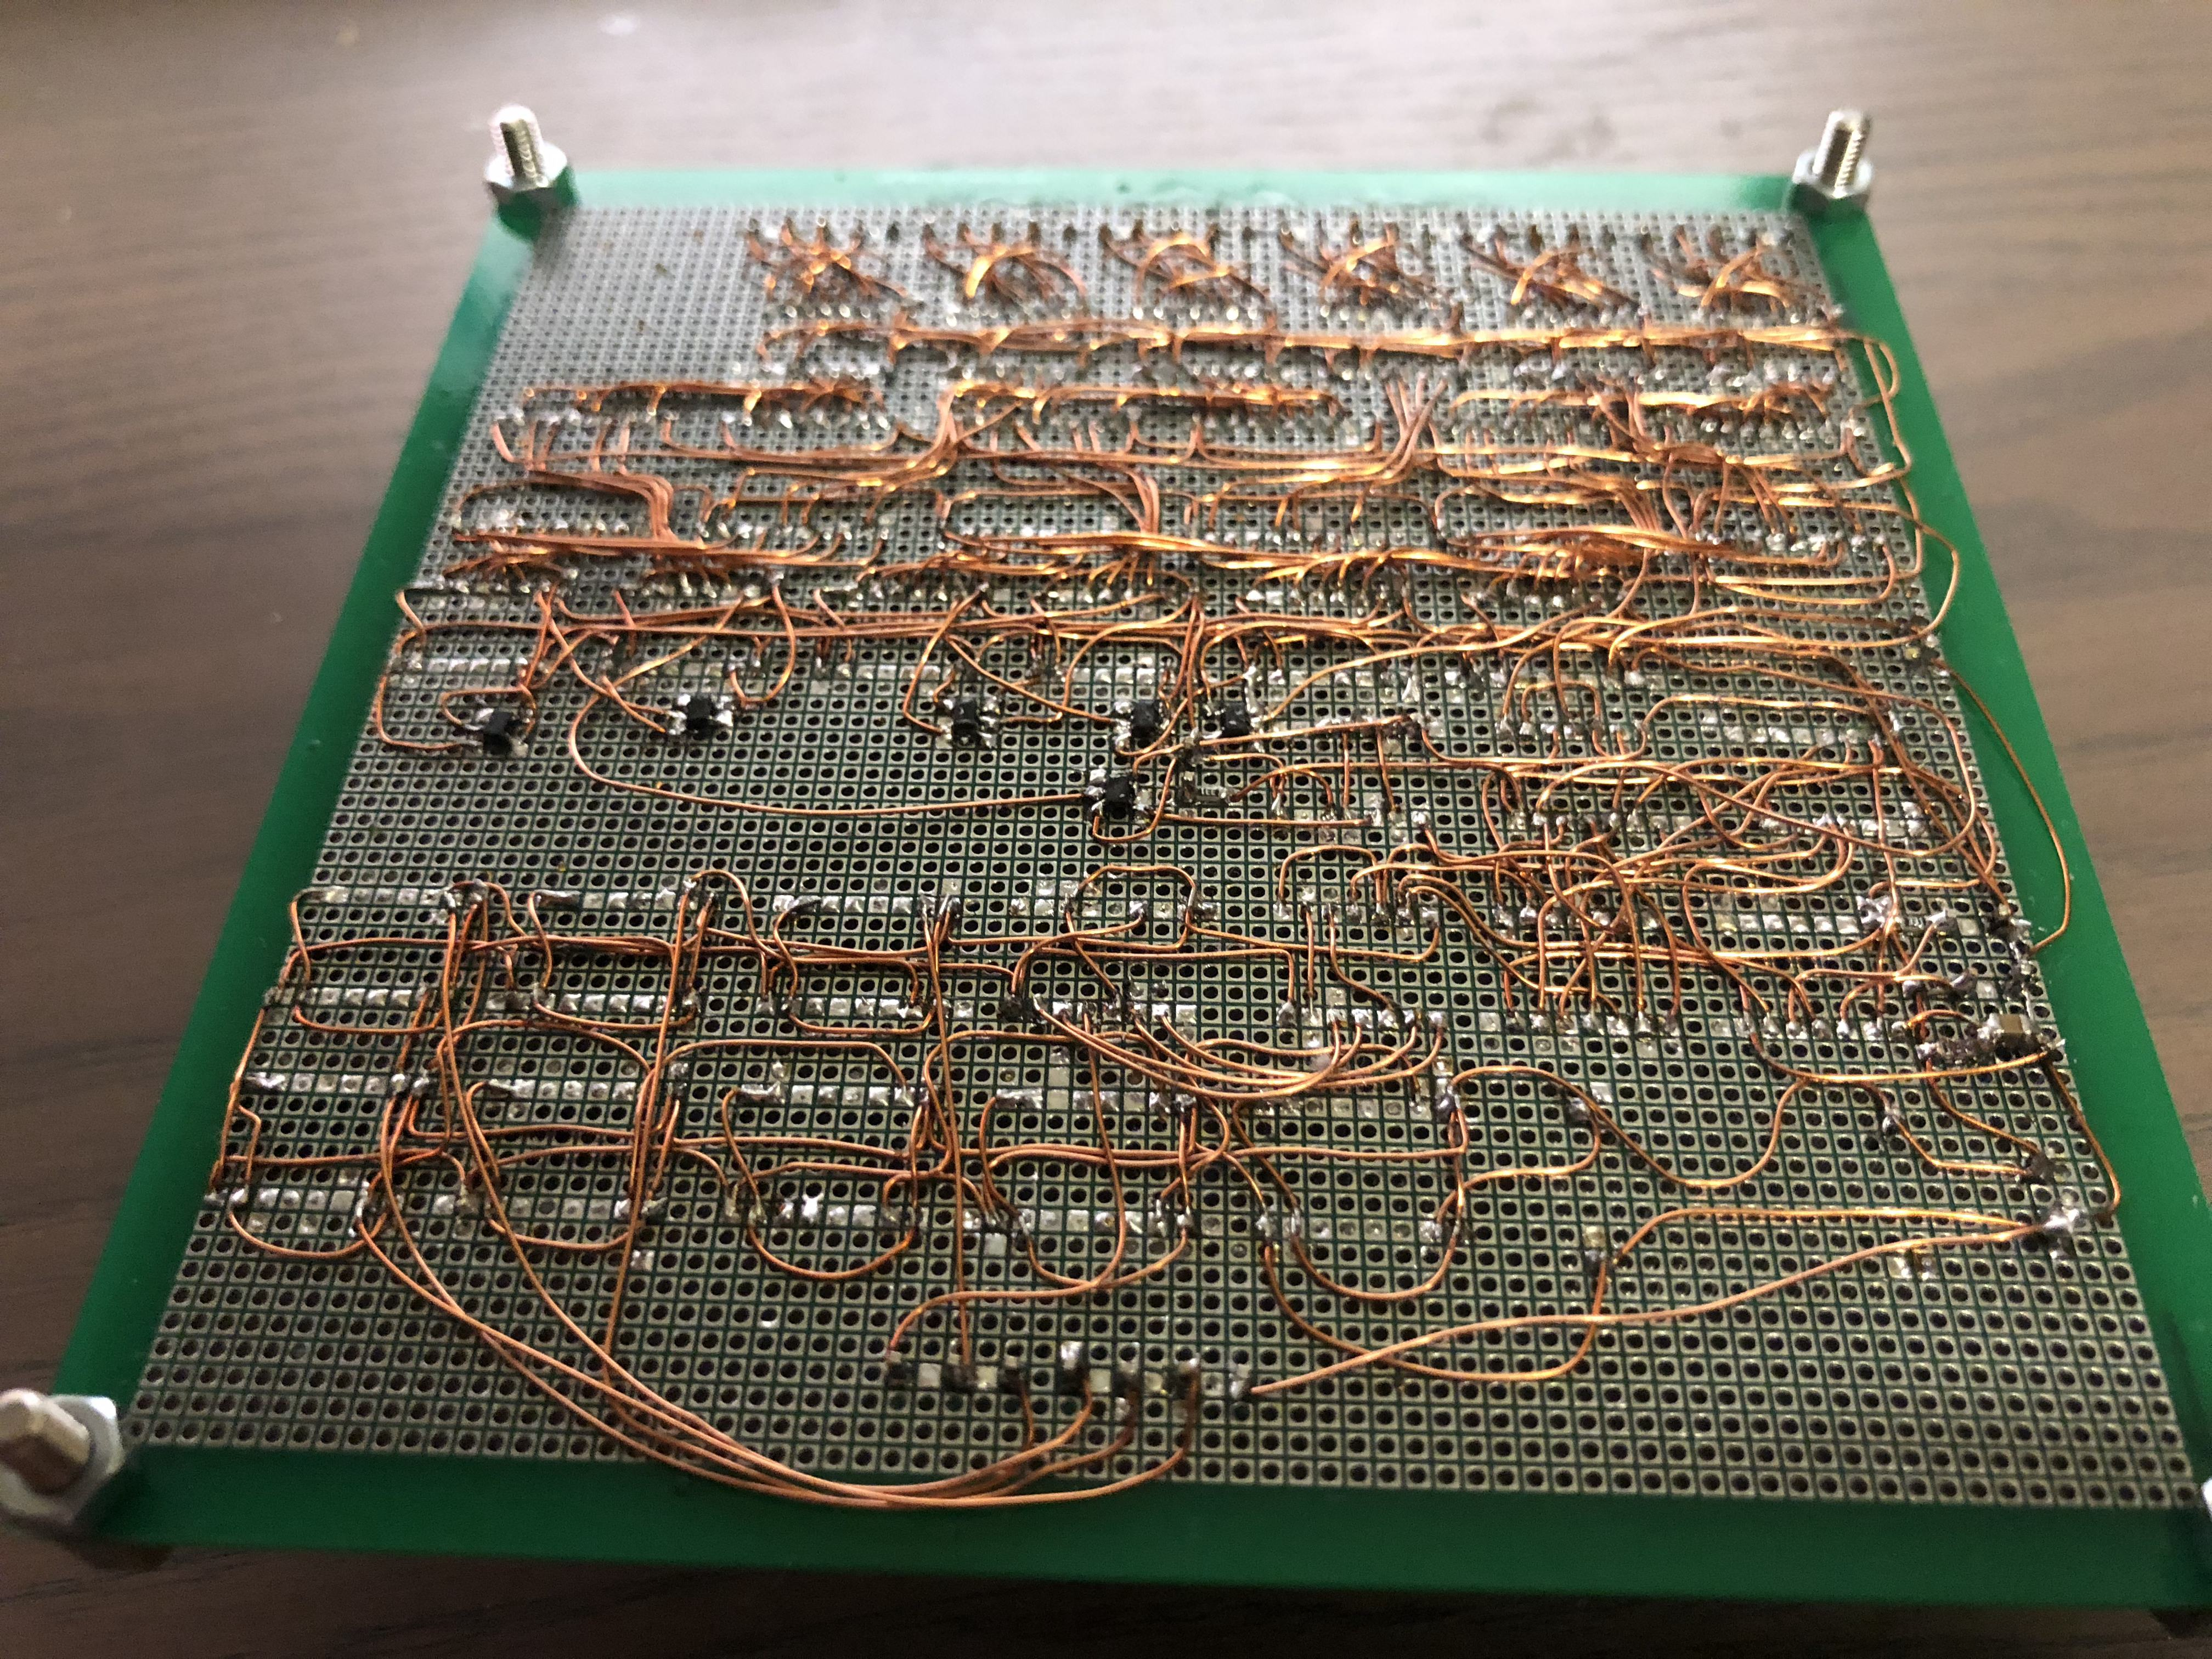 A 7400 Frequency Counter On Perfboard Jaeblog 10mhz Circuit After Making Some Modifications The Full Schematic For My Version Is As This